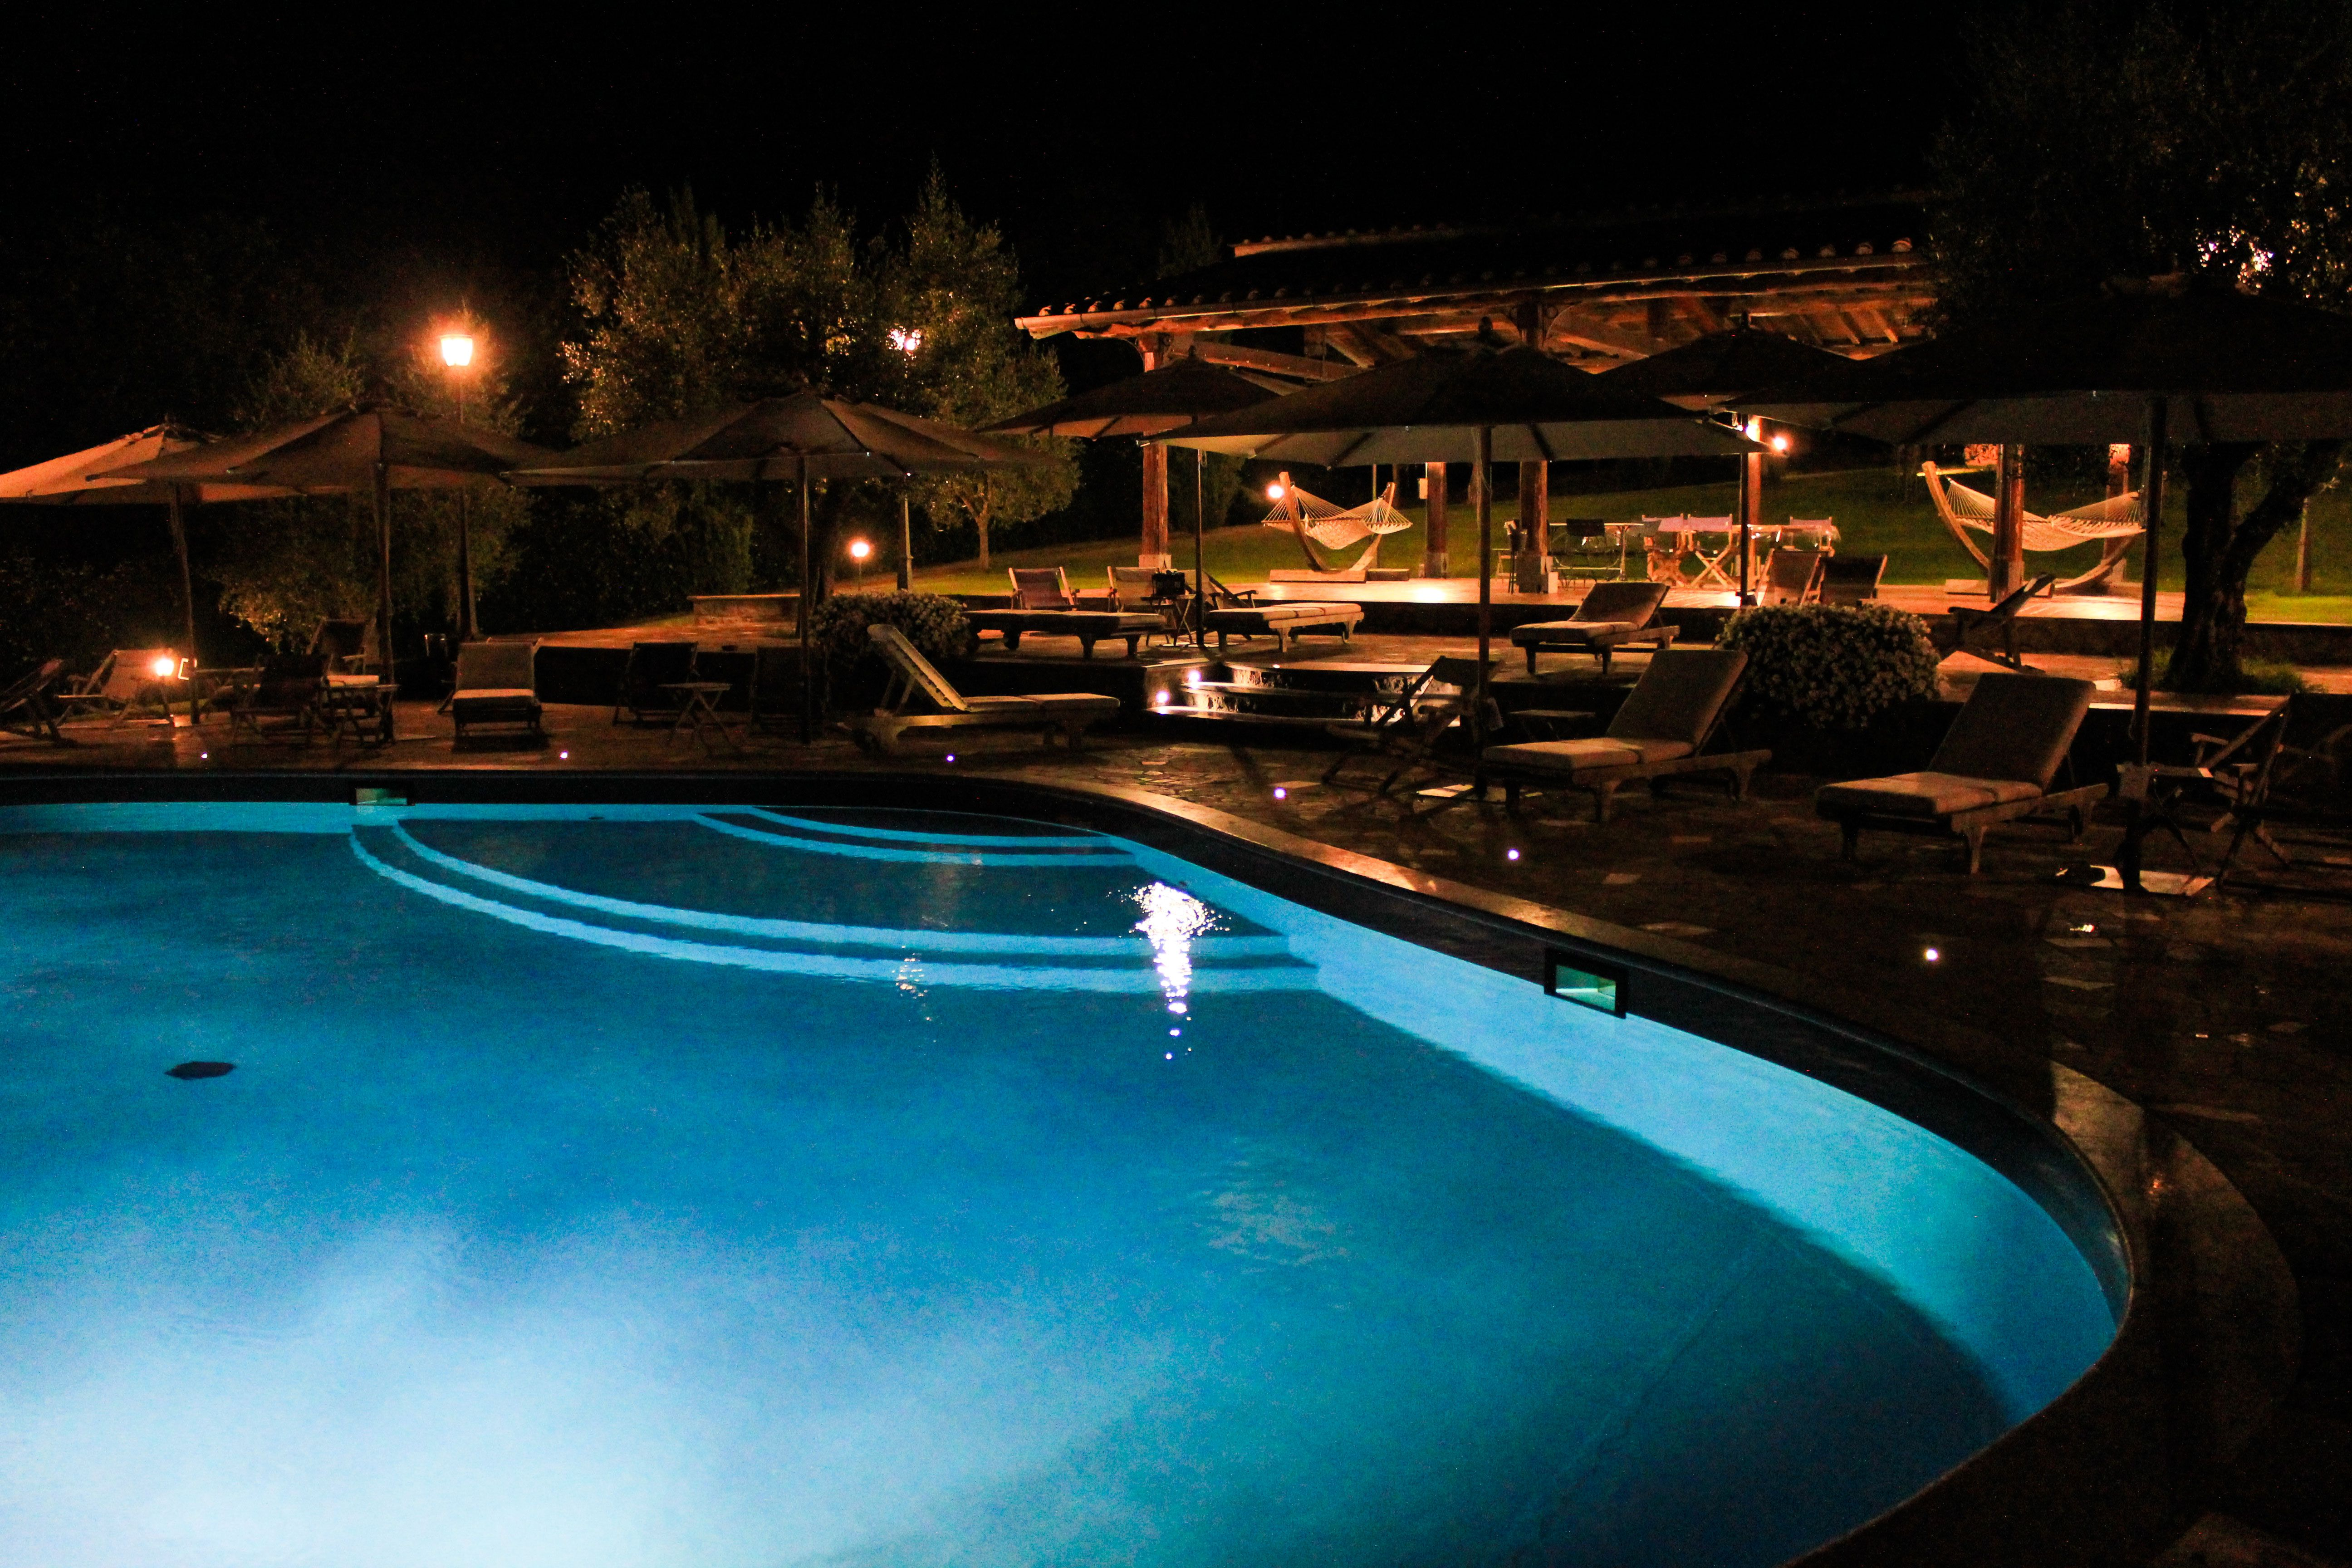 Agriturismo with Swimming pool and a big Gazebo